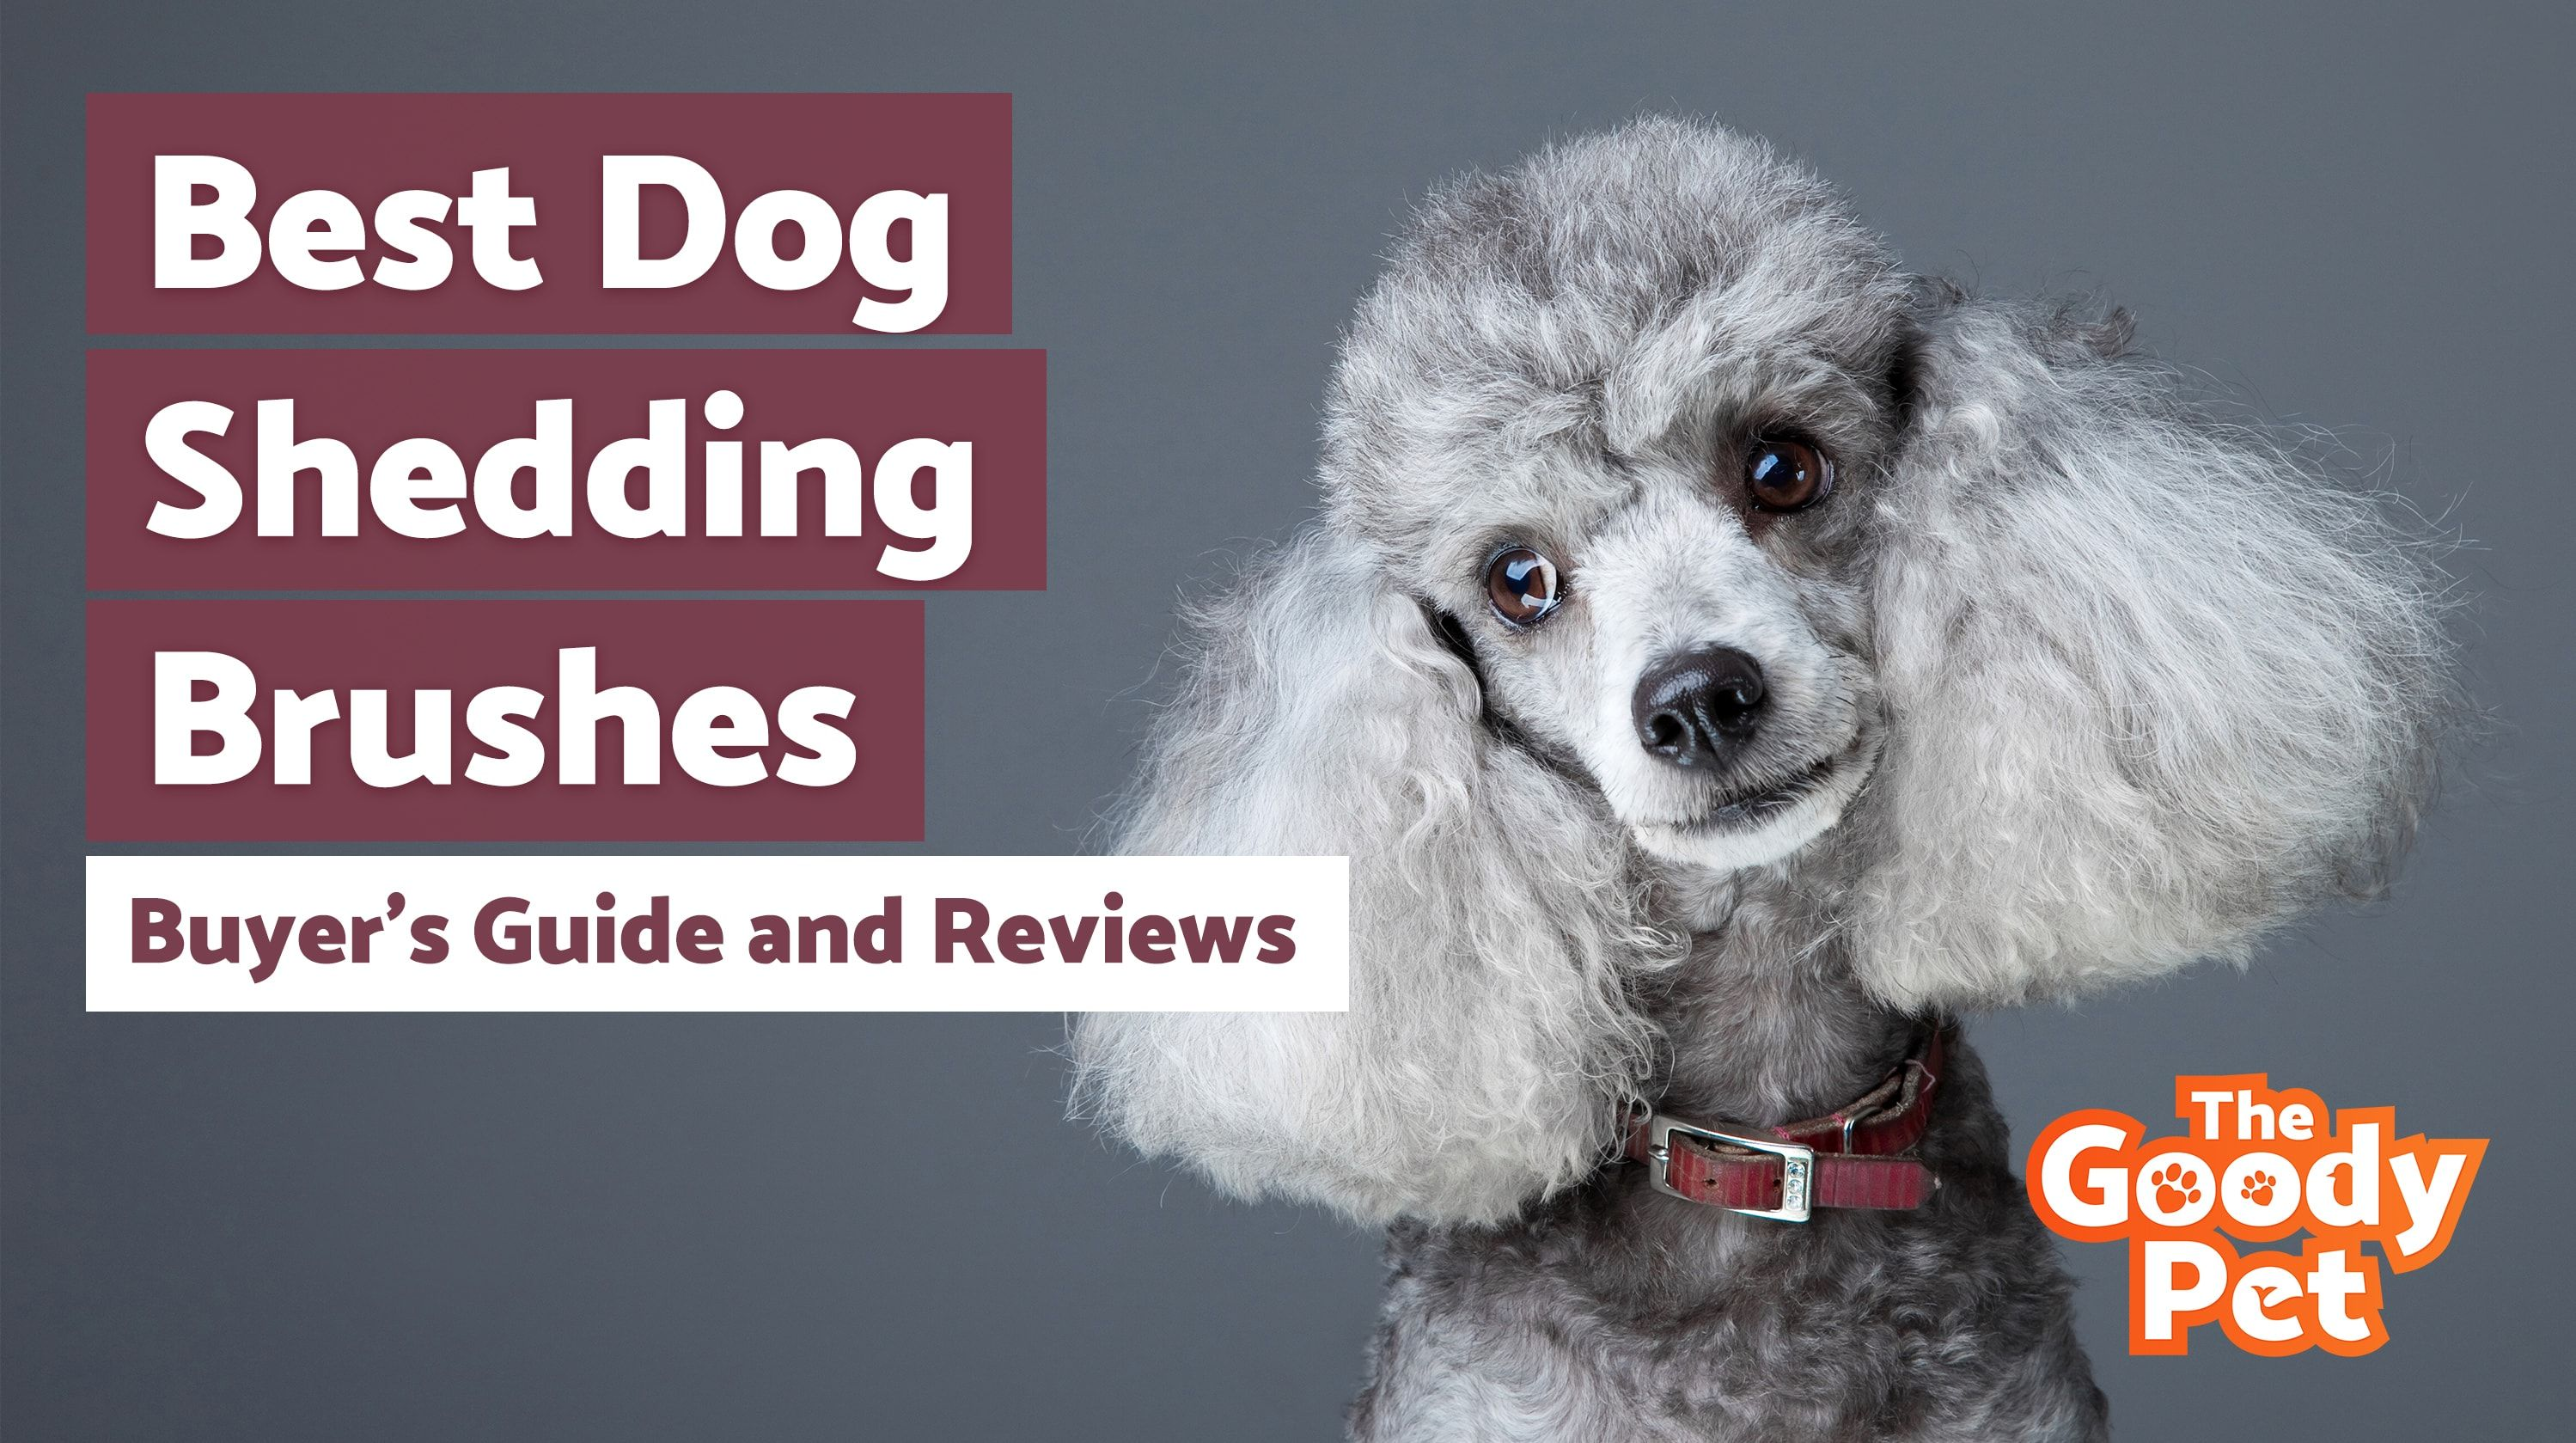 A Dog Deshedding Brush Is A Tool That Every Dog Owner Should Own Unless They Have A Poodle Or Another Dog That Doesn T Shed Https Dogs Deshedding Best Dogs